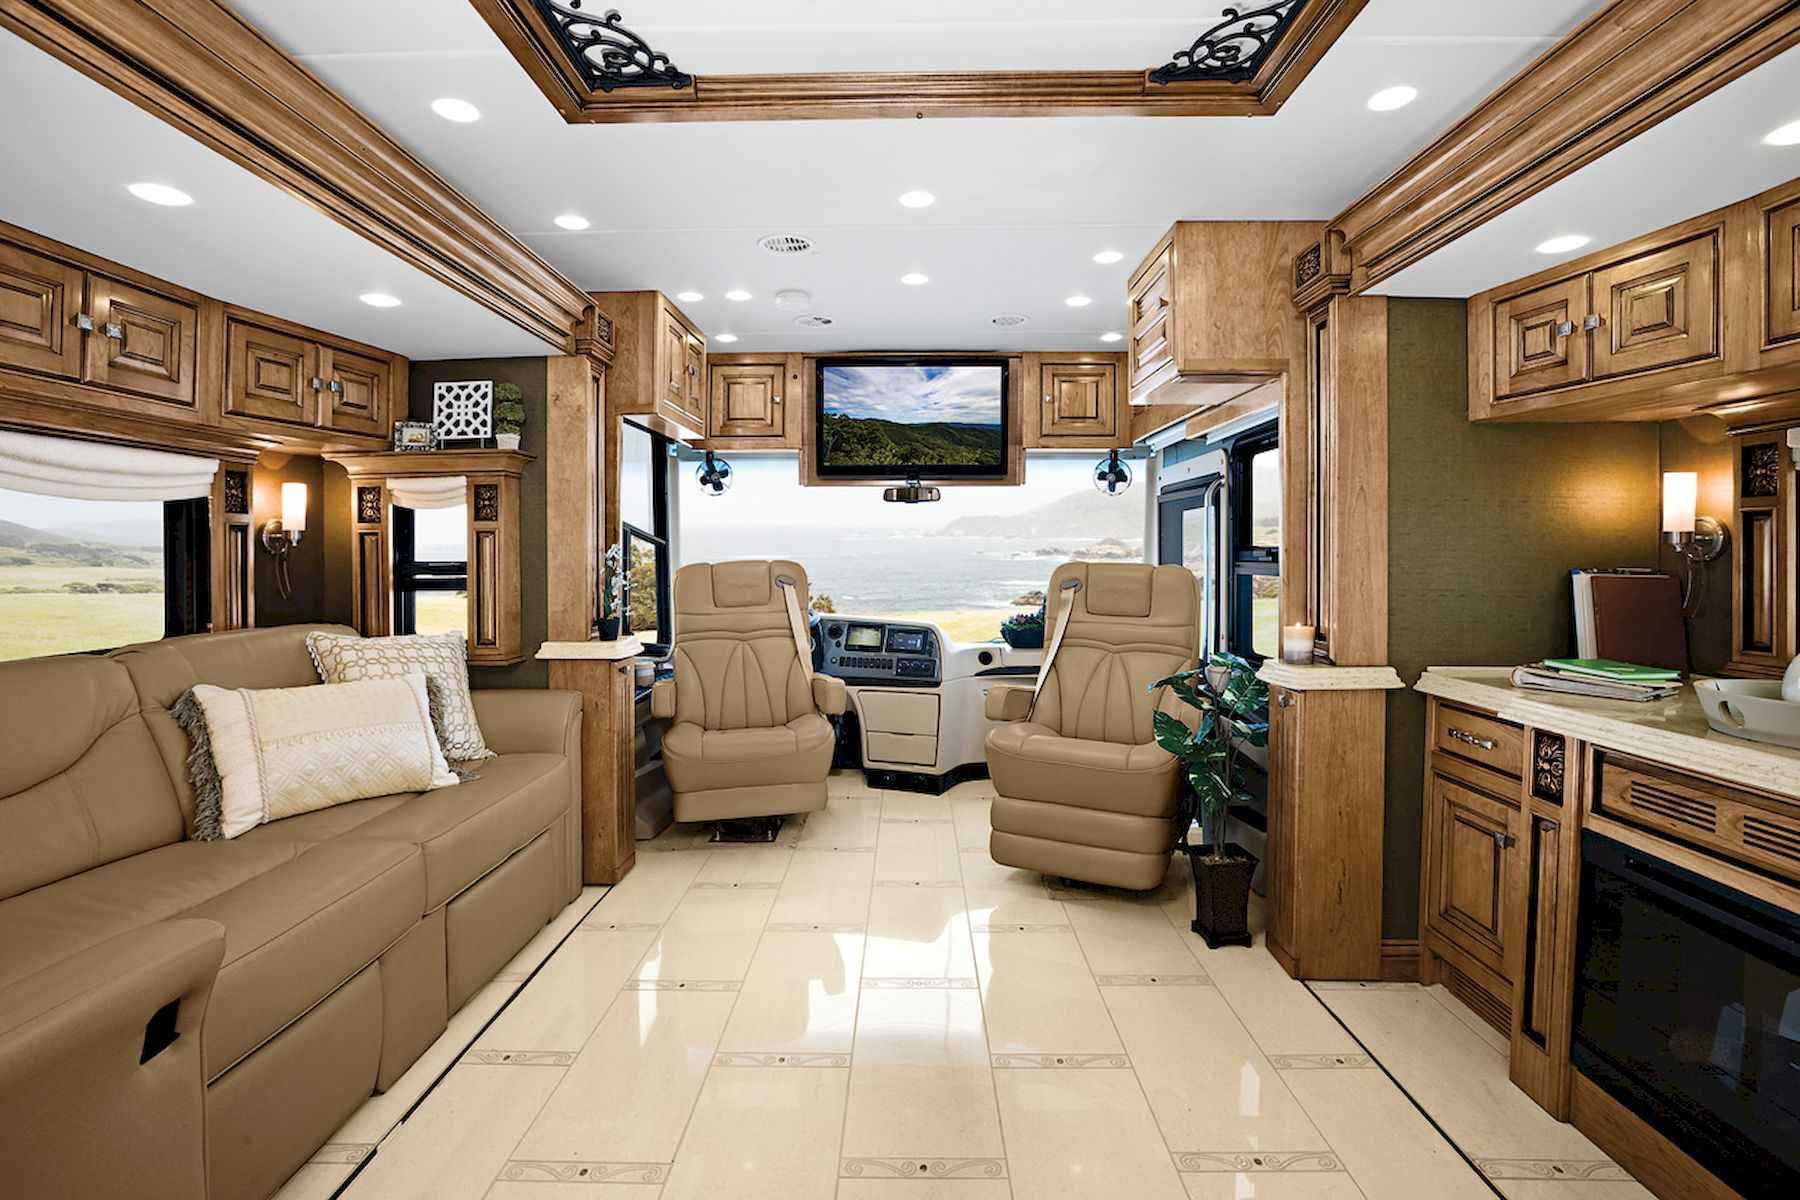 70 Stunning RV Living Camper Room Ideas Decorations Make Your Summer Awesome (16)